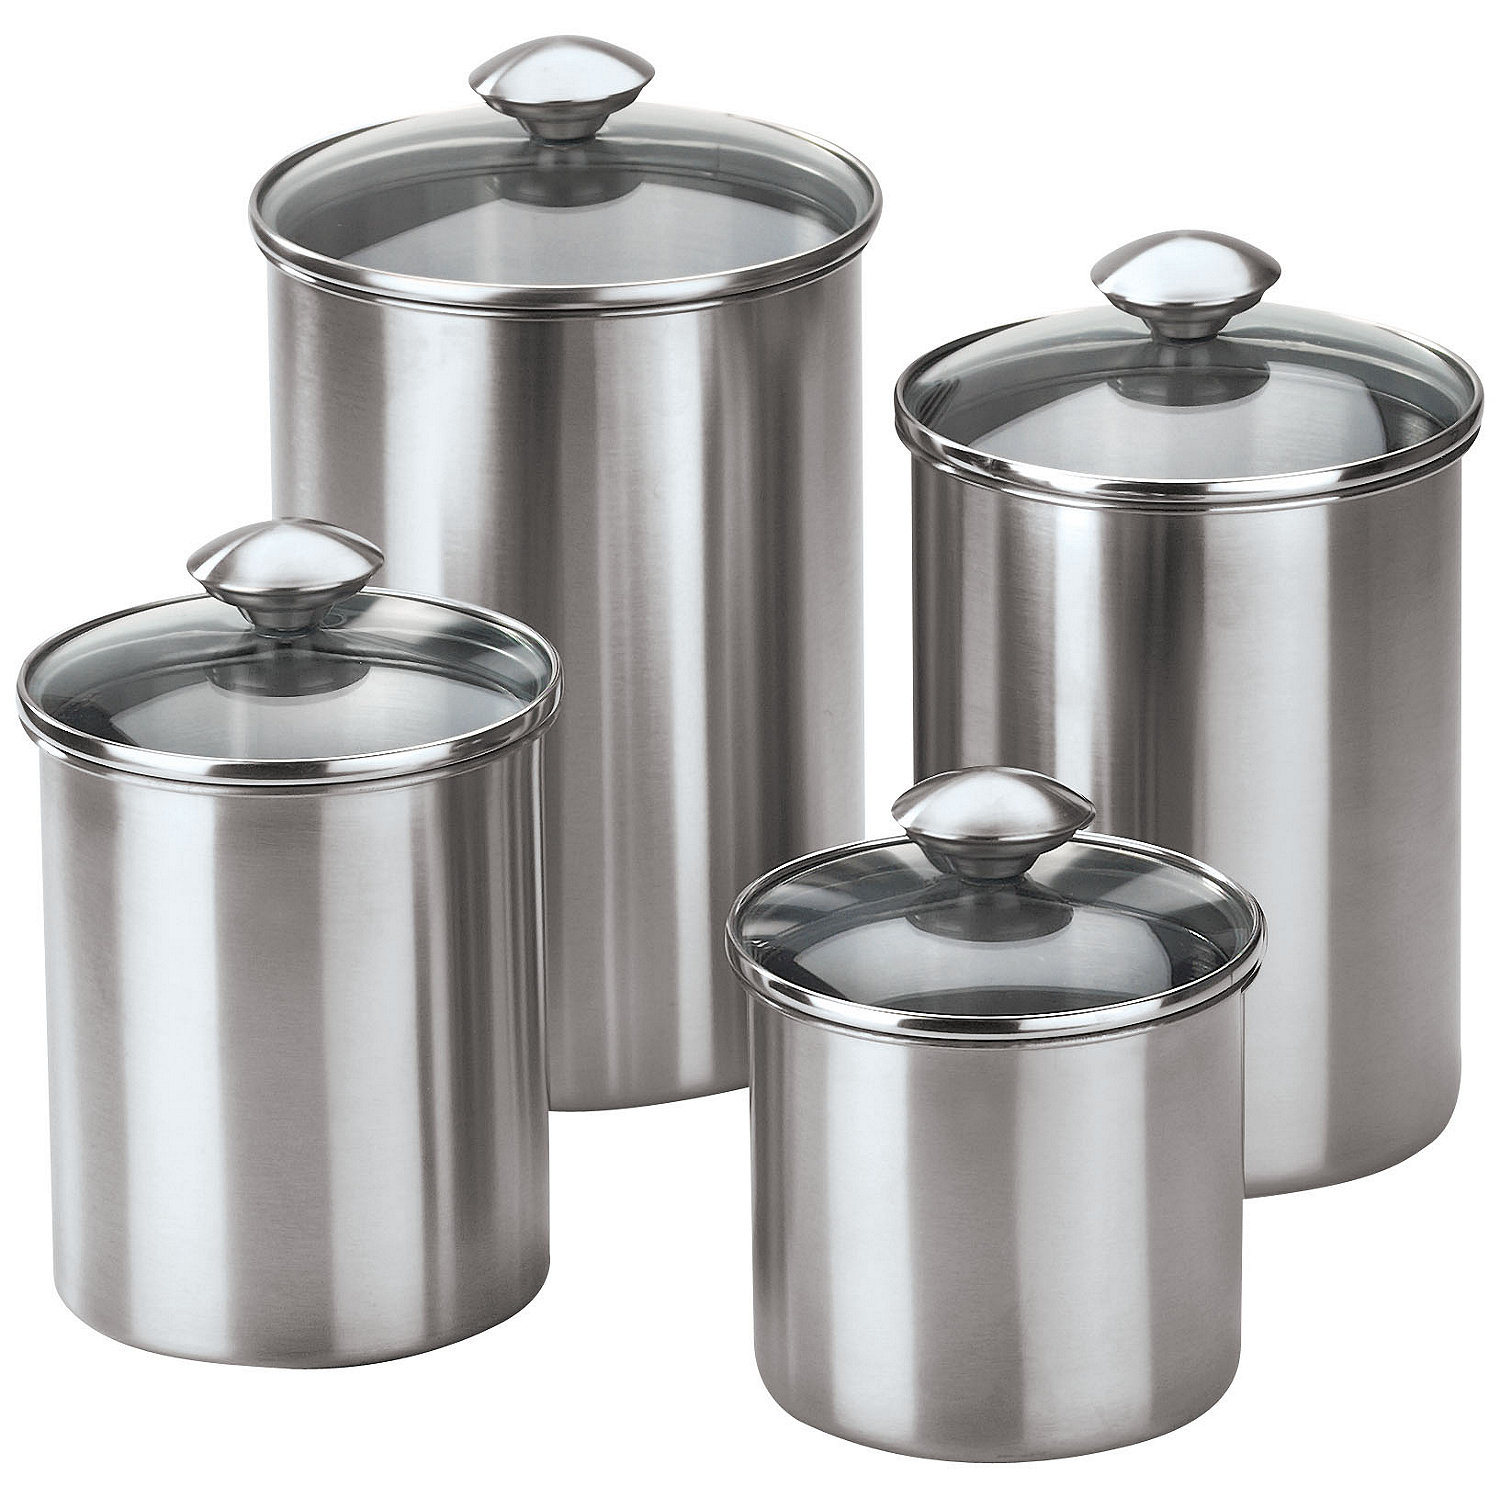 kitchen canister set 4 piece stainless steel modern kitchen canister set ebay